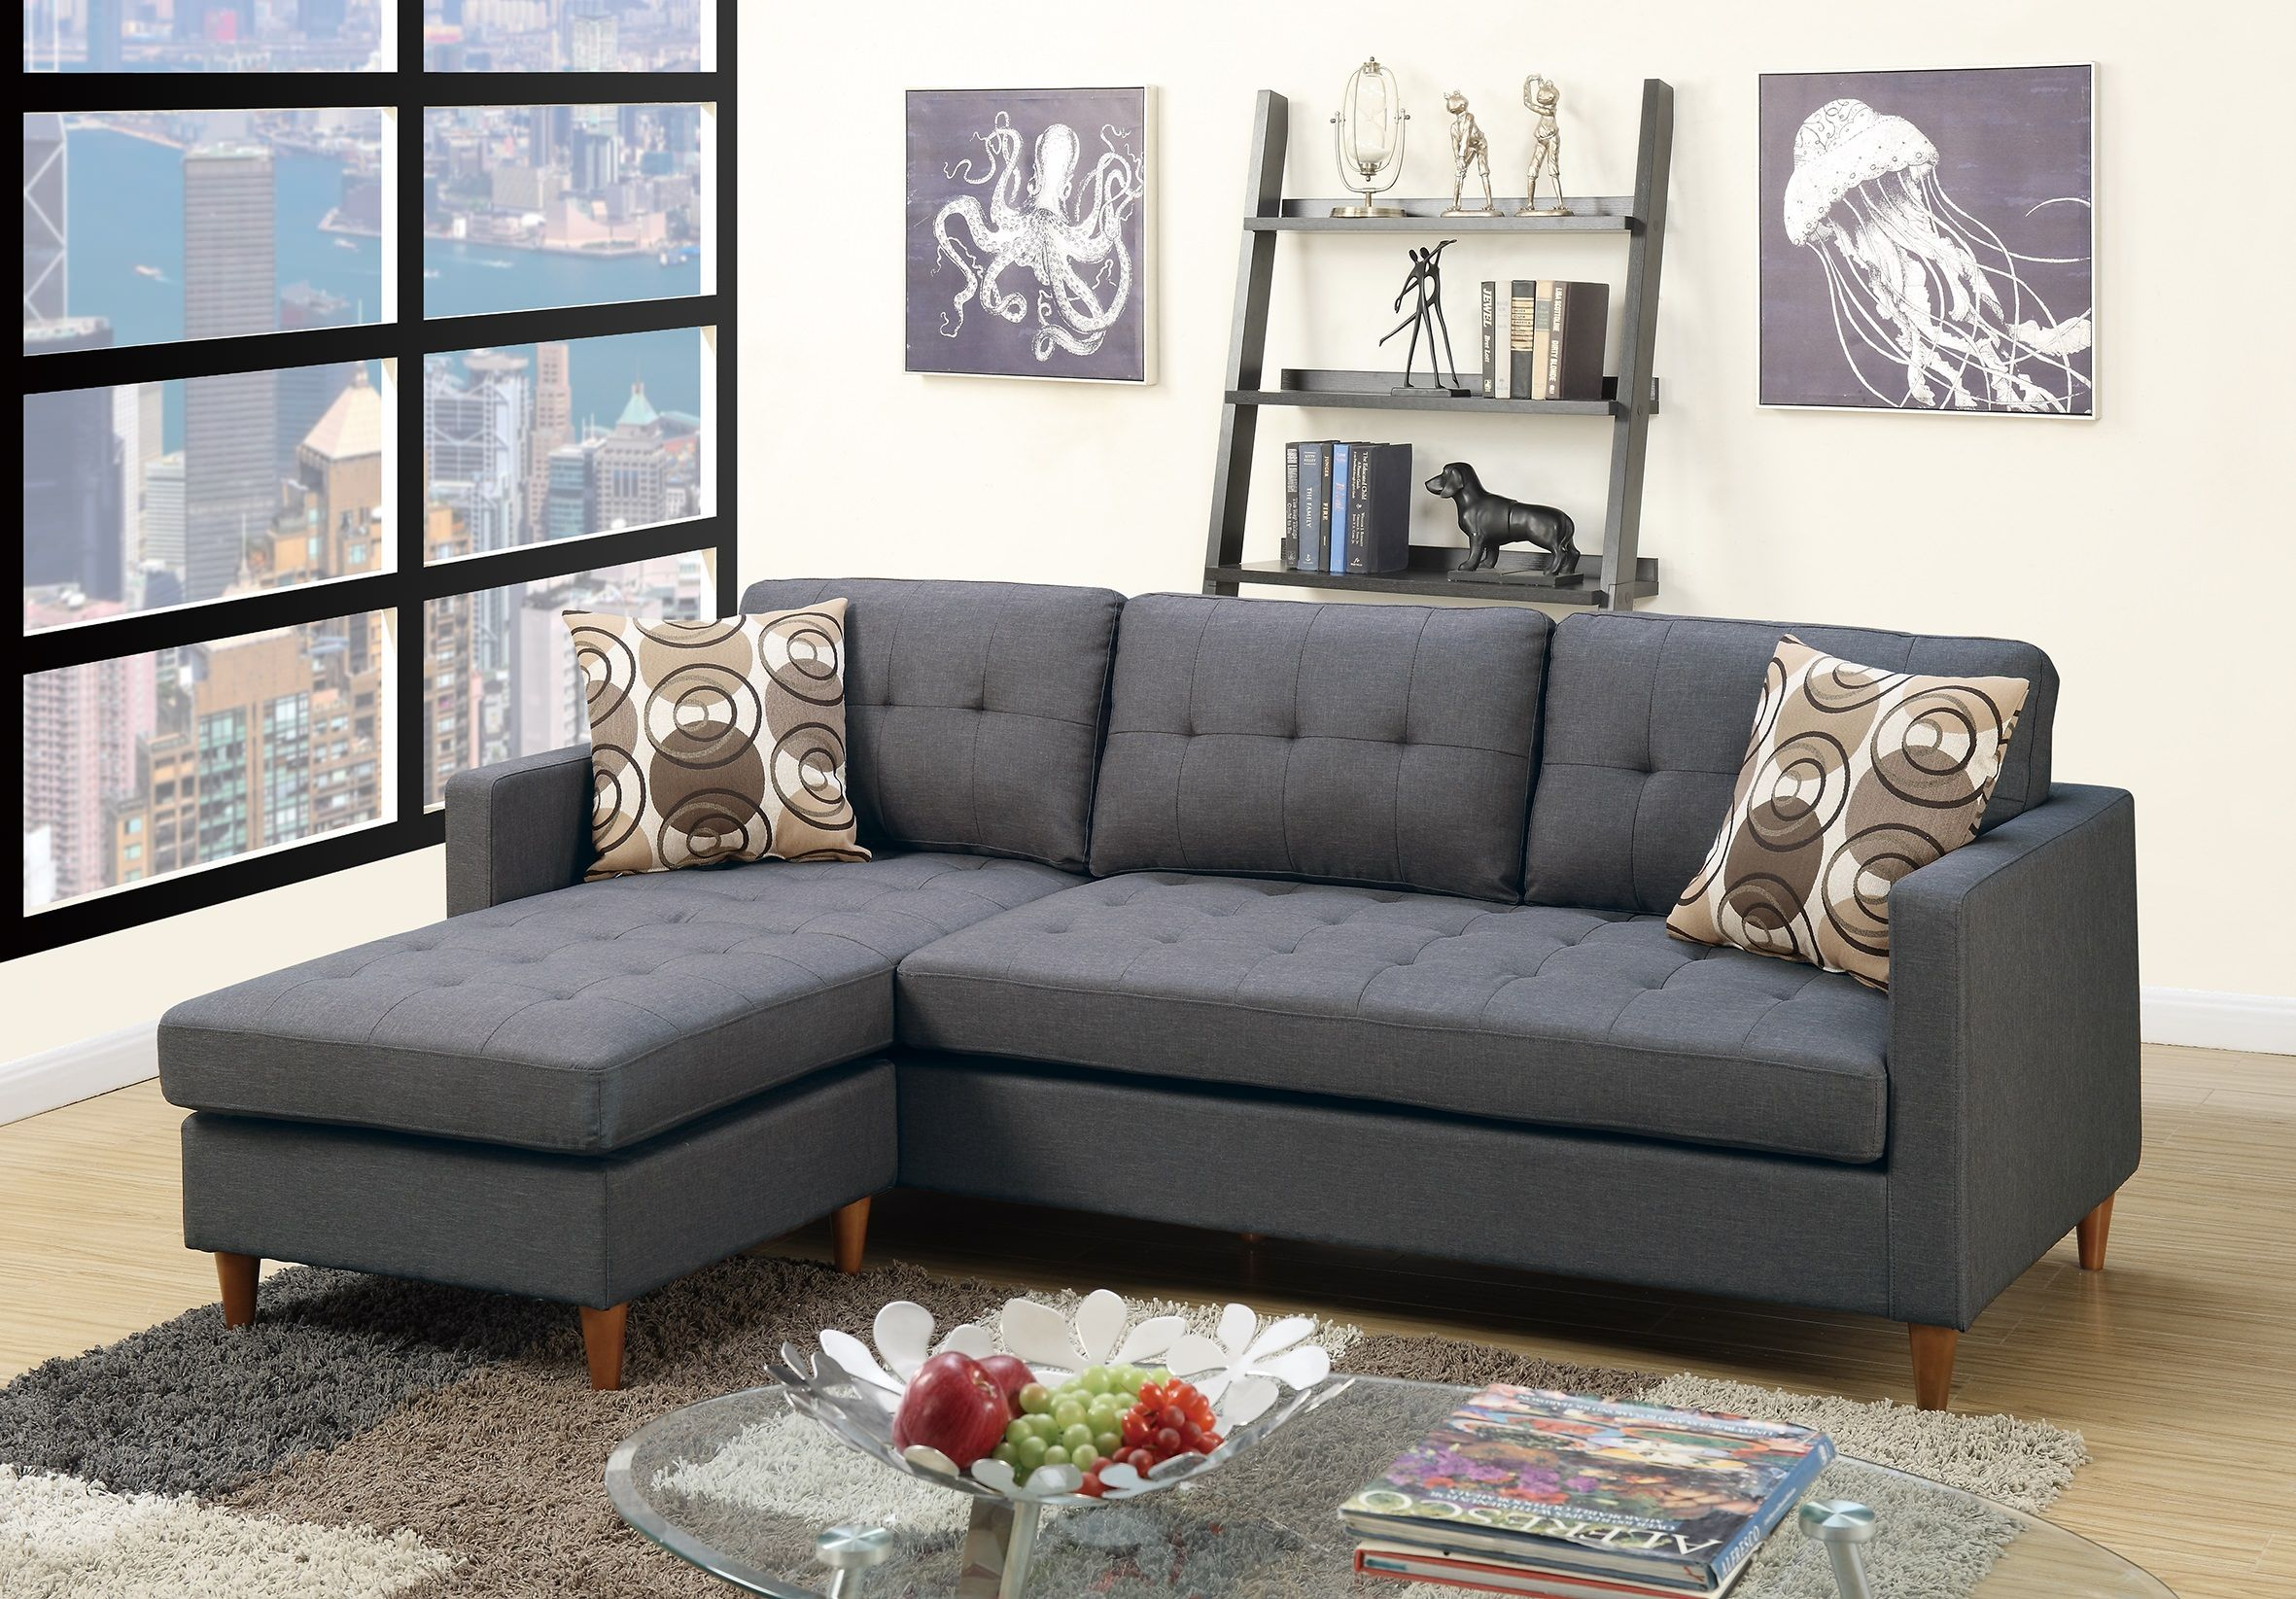 F7094 Blue Gray Sectional Sofa By Poundex Small Sectional Sofa Sectional Sofa Couch Grey Sectional Sofa